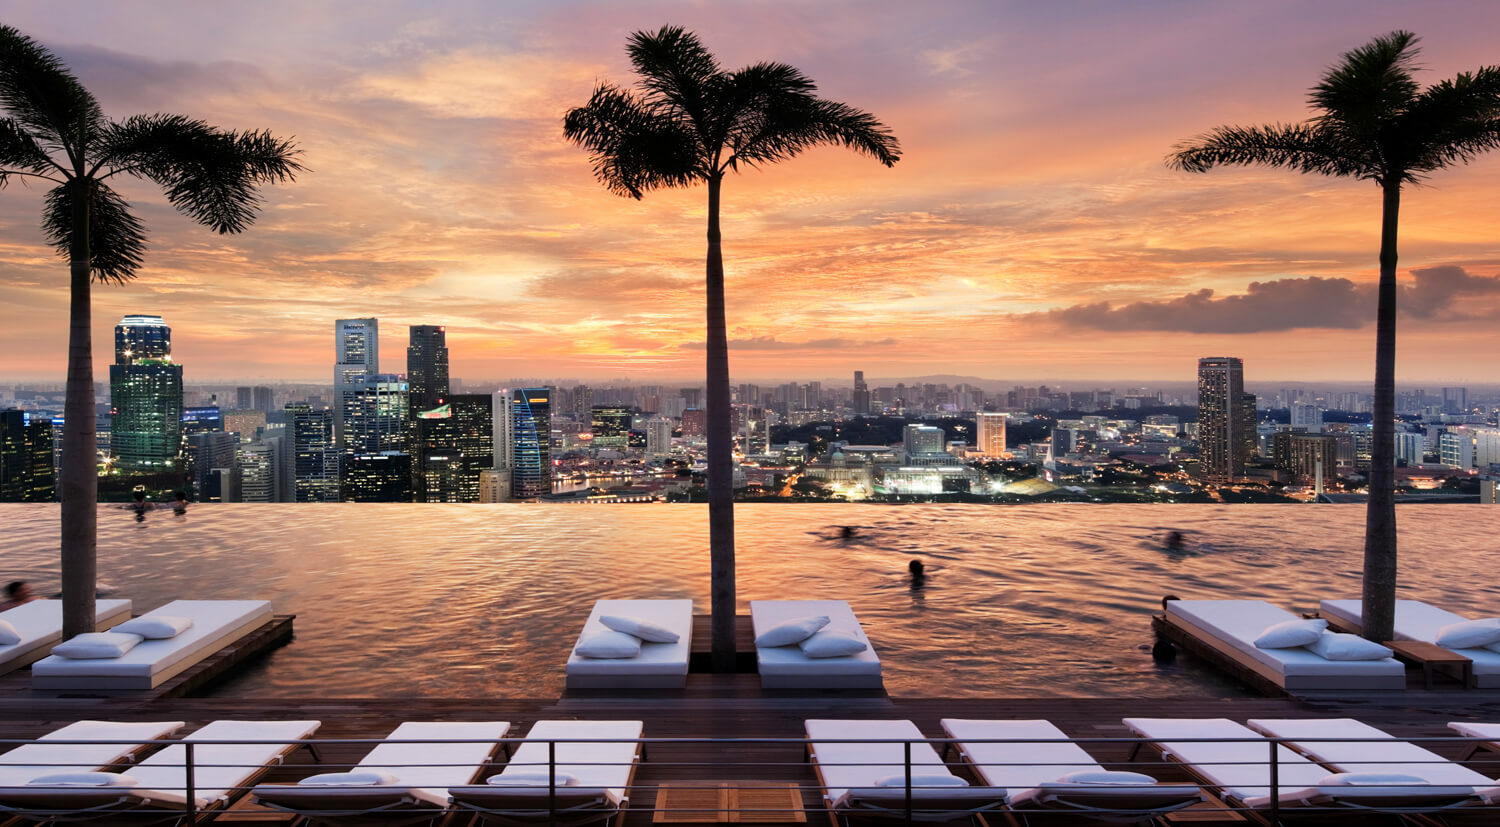 sunset pool view-marina bay sands singapore